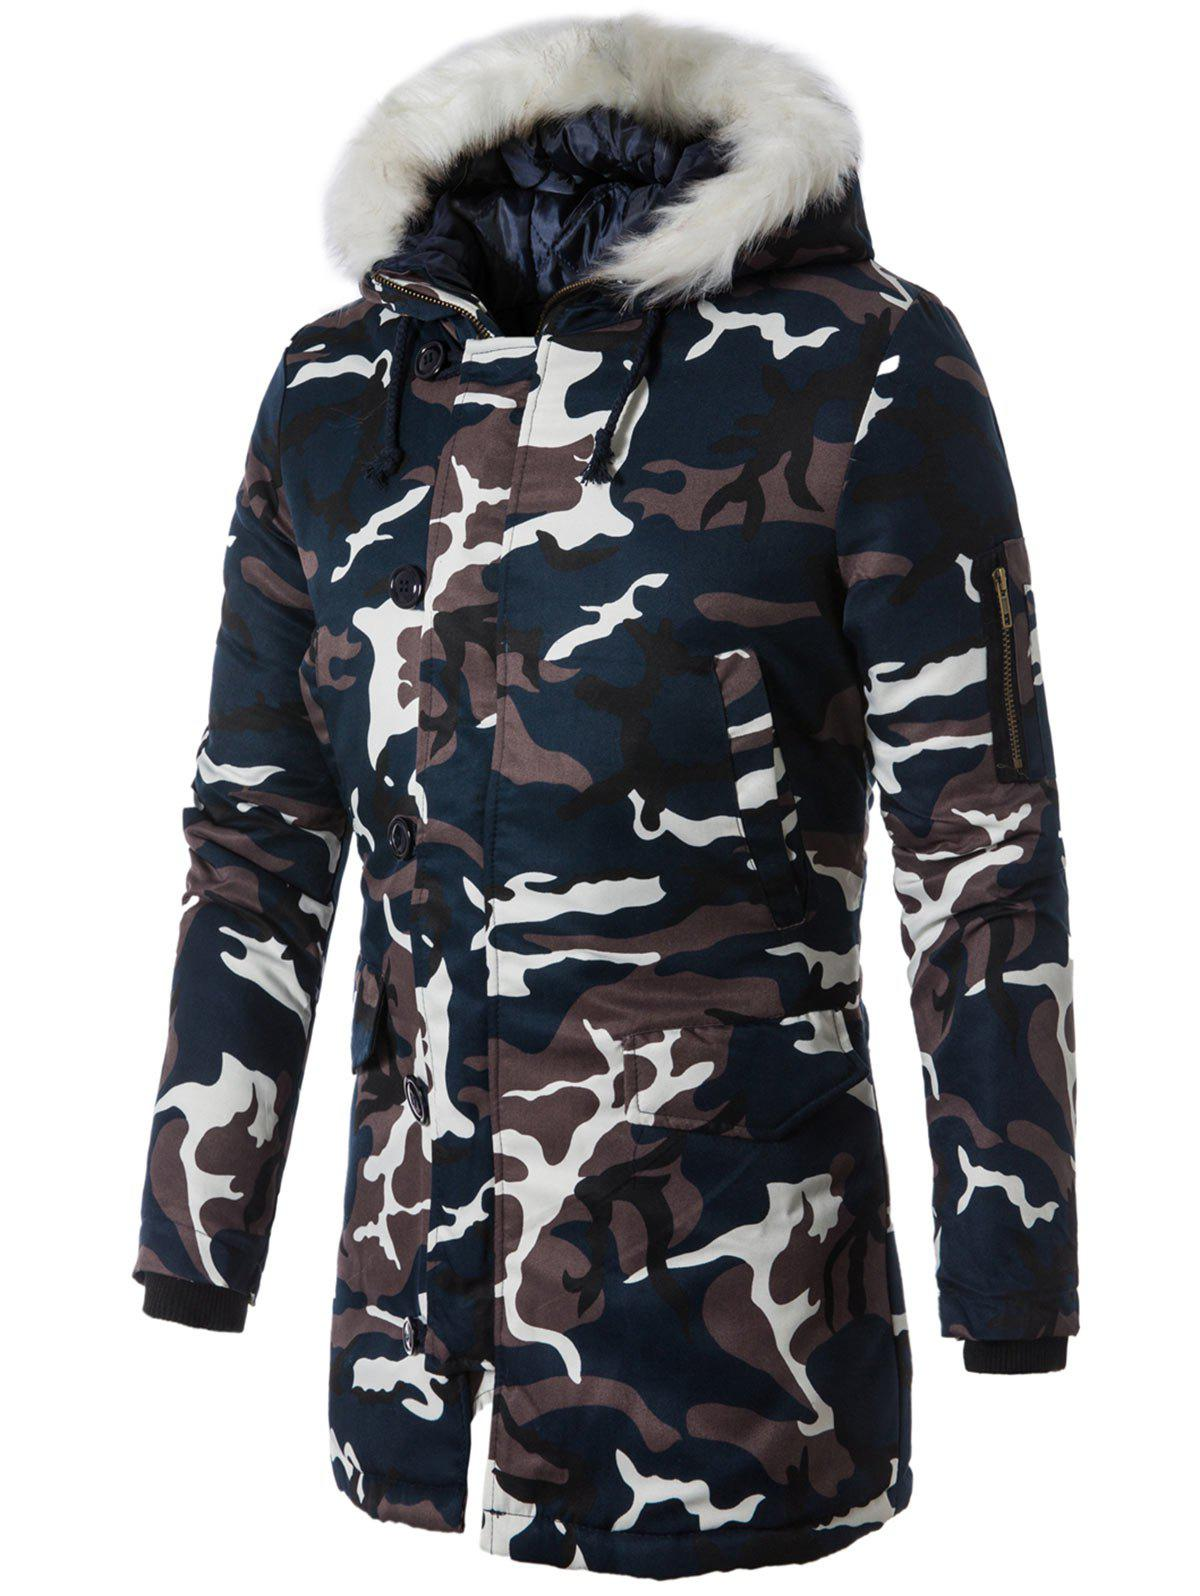 Zip Up Faux Fur Hooded Camo Coat - PURPLISH BLUE 5XL